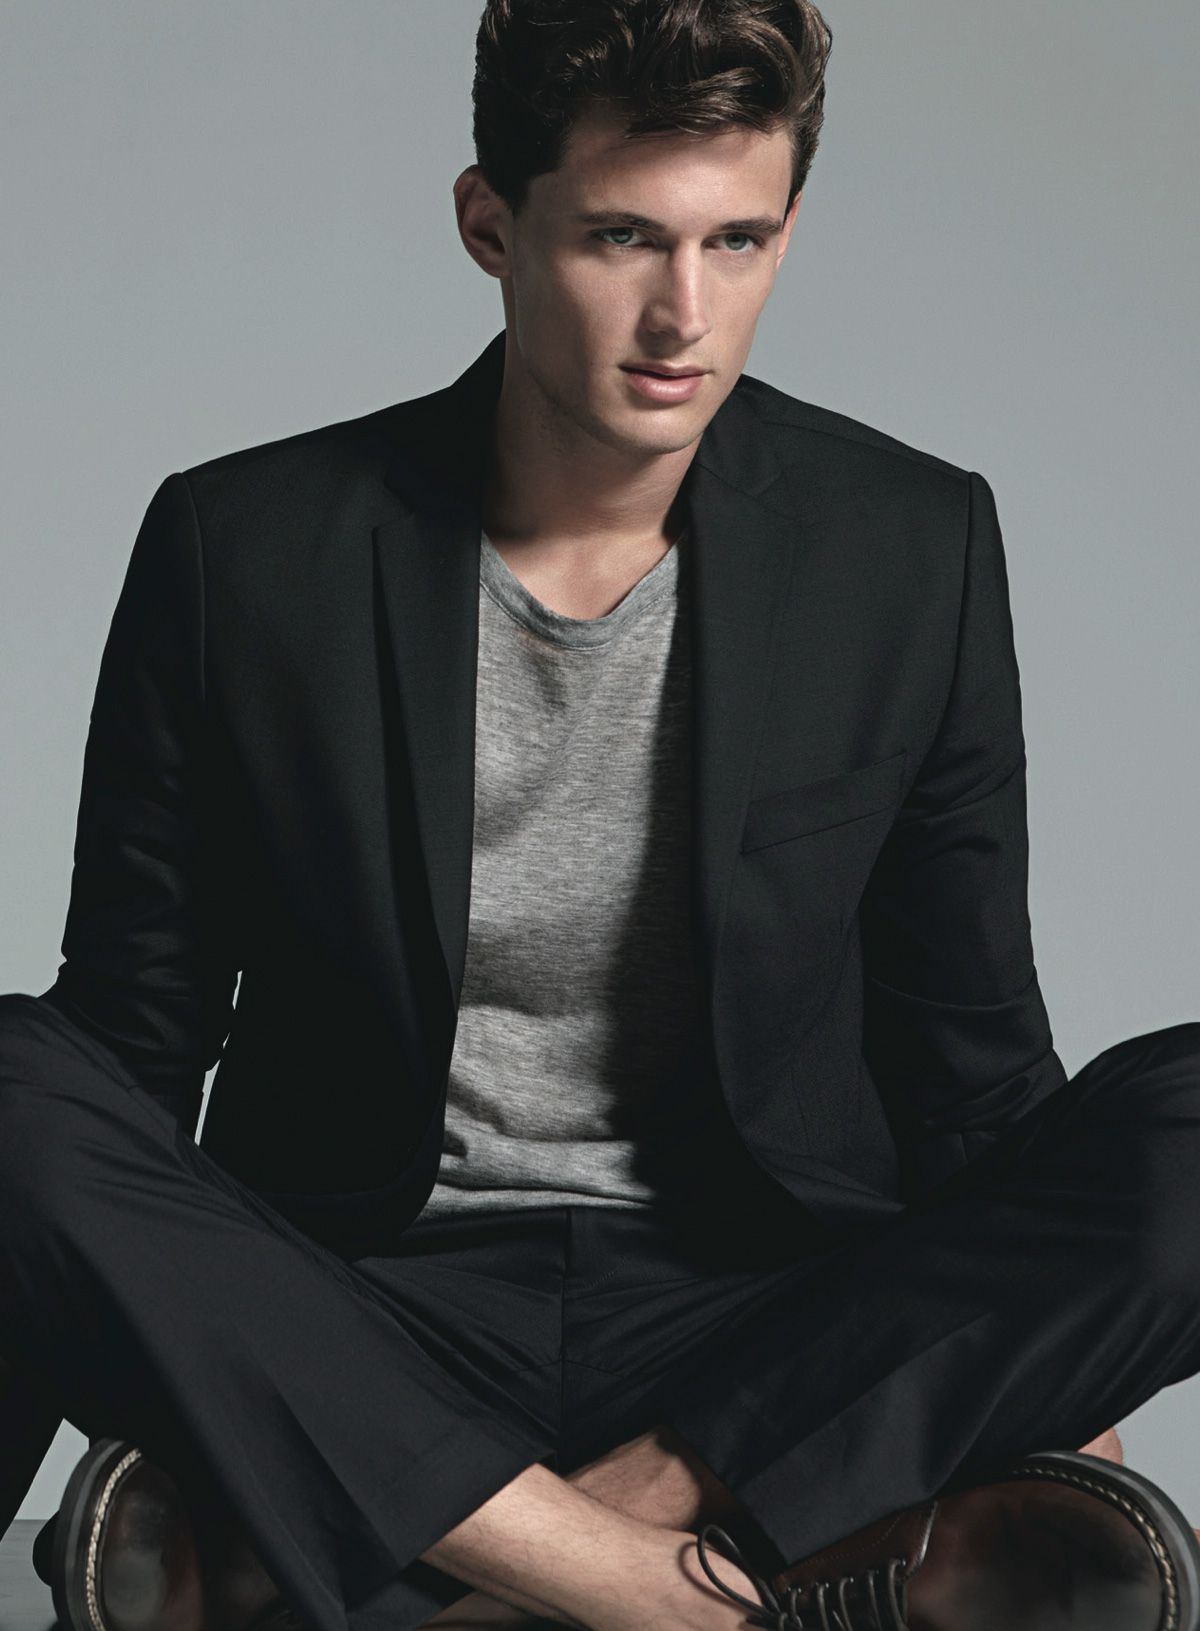 Black t shirt with suit - Explore Details Magazine Men In Black And More